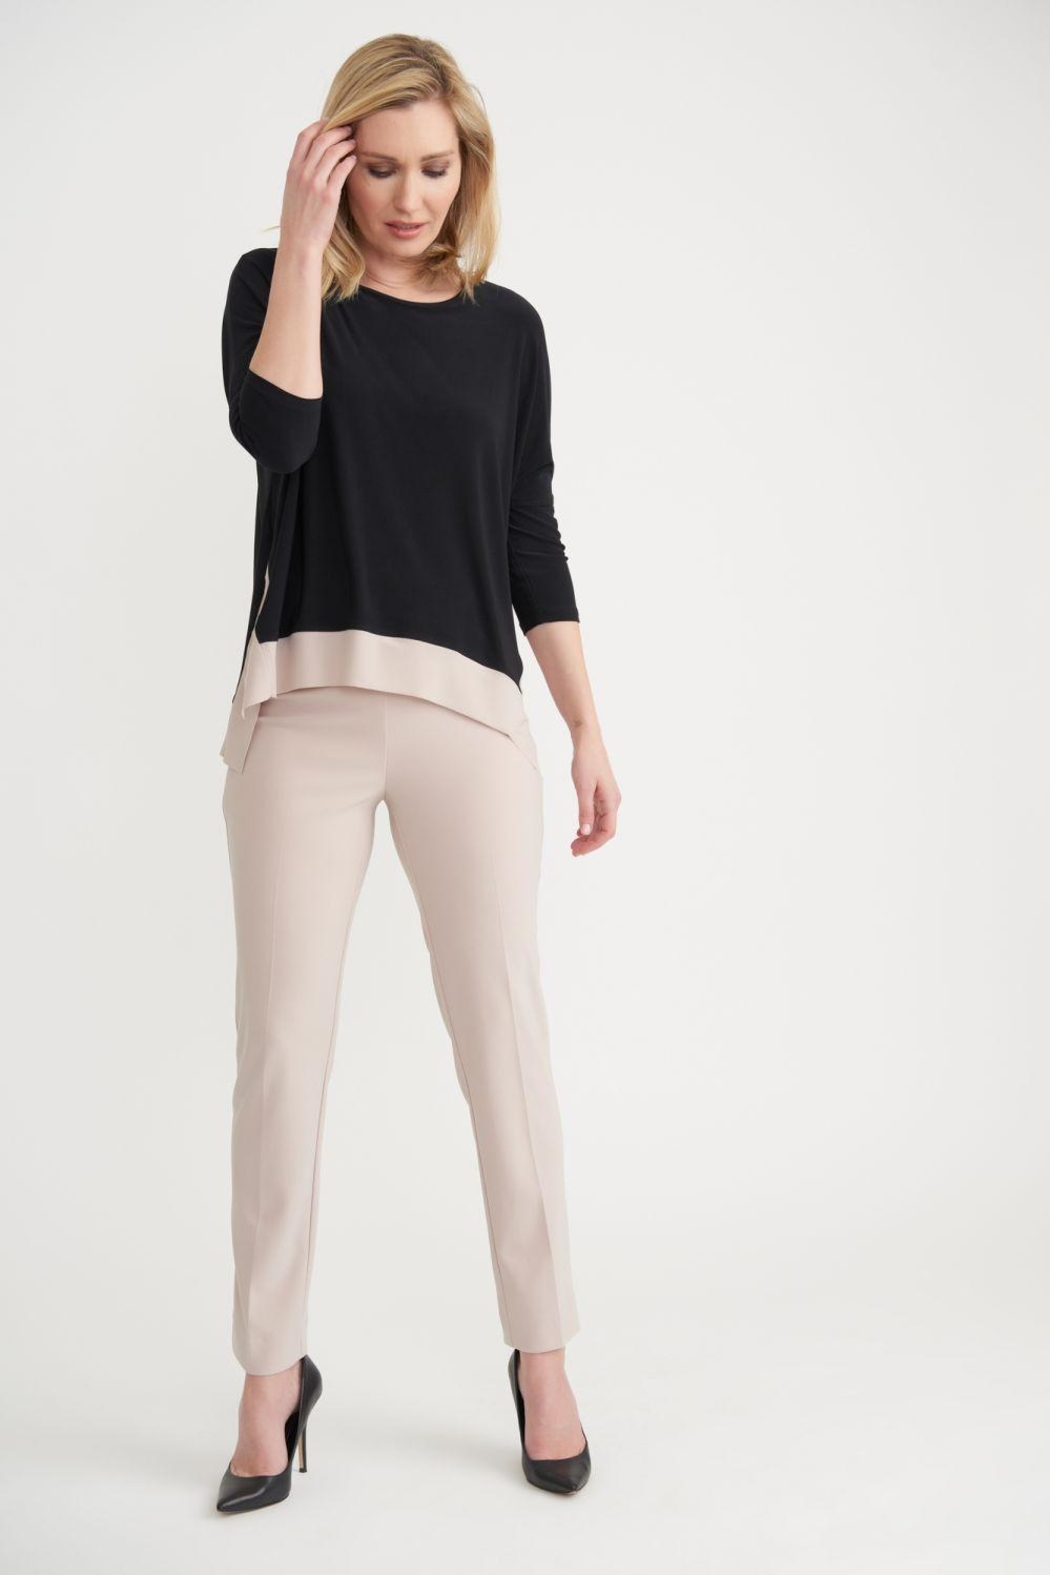 Joseph Ribkoff Molly Two-Tone Top - Side Cropped Image